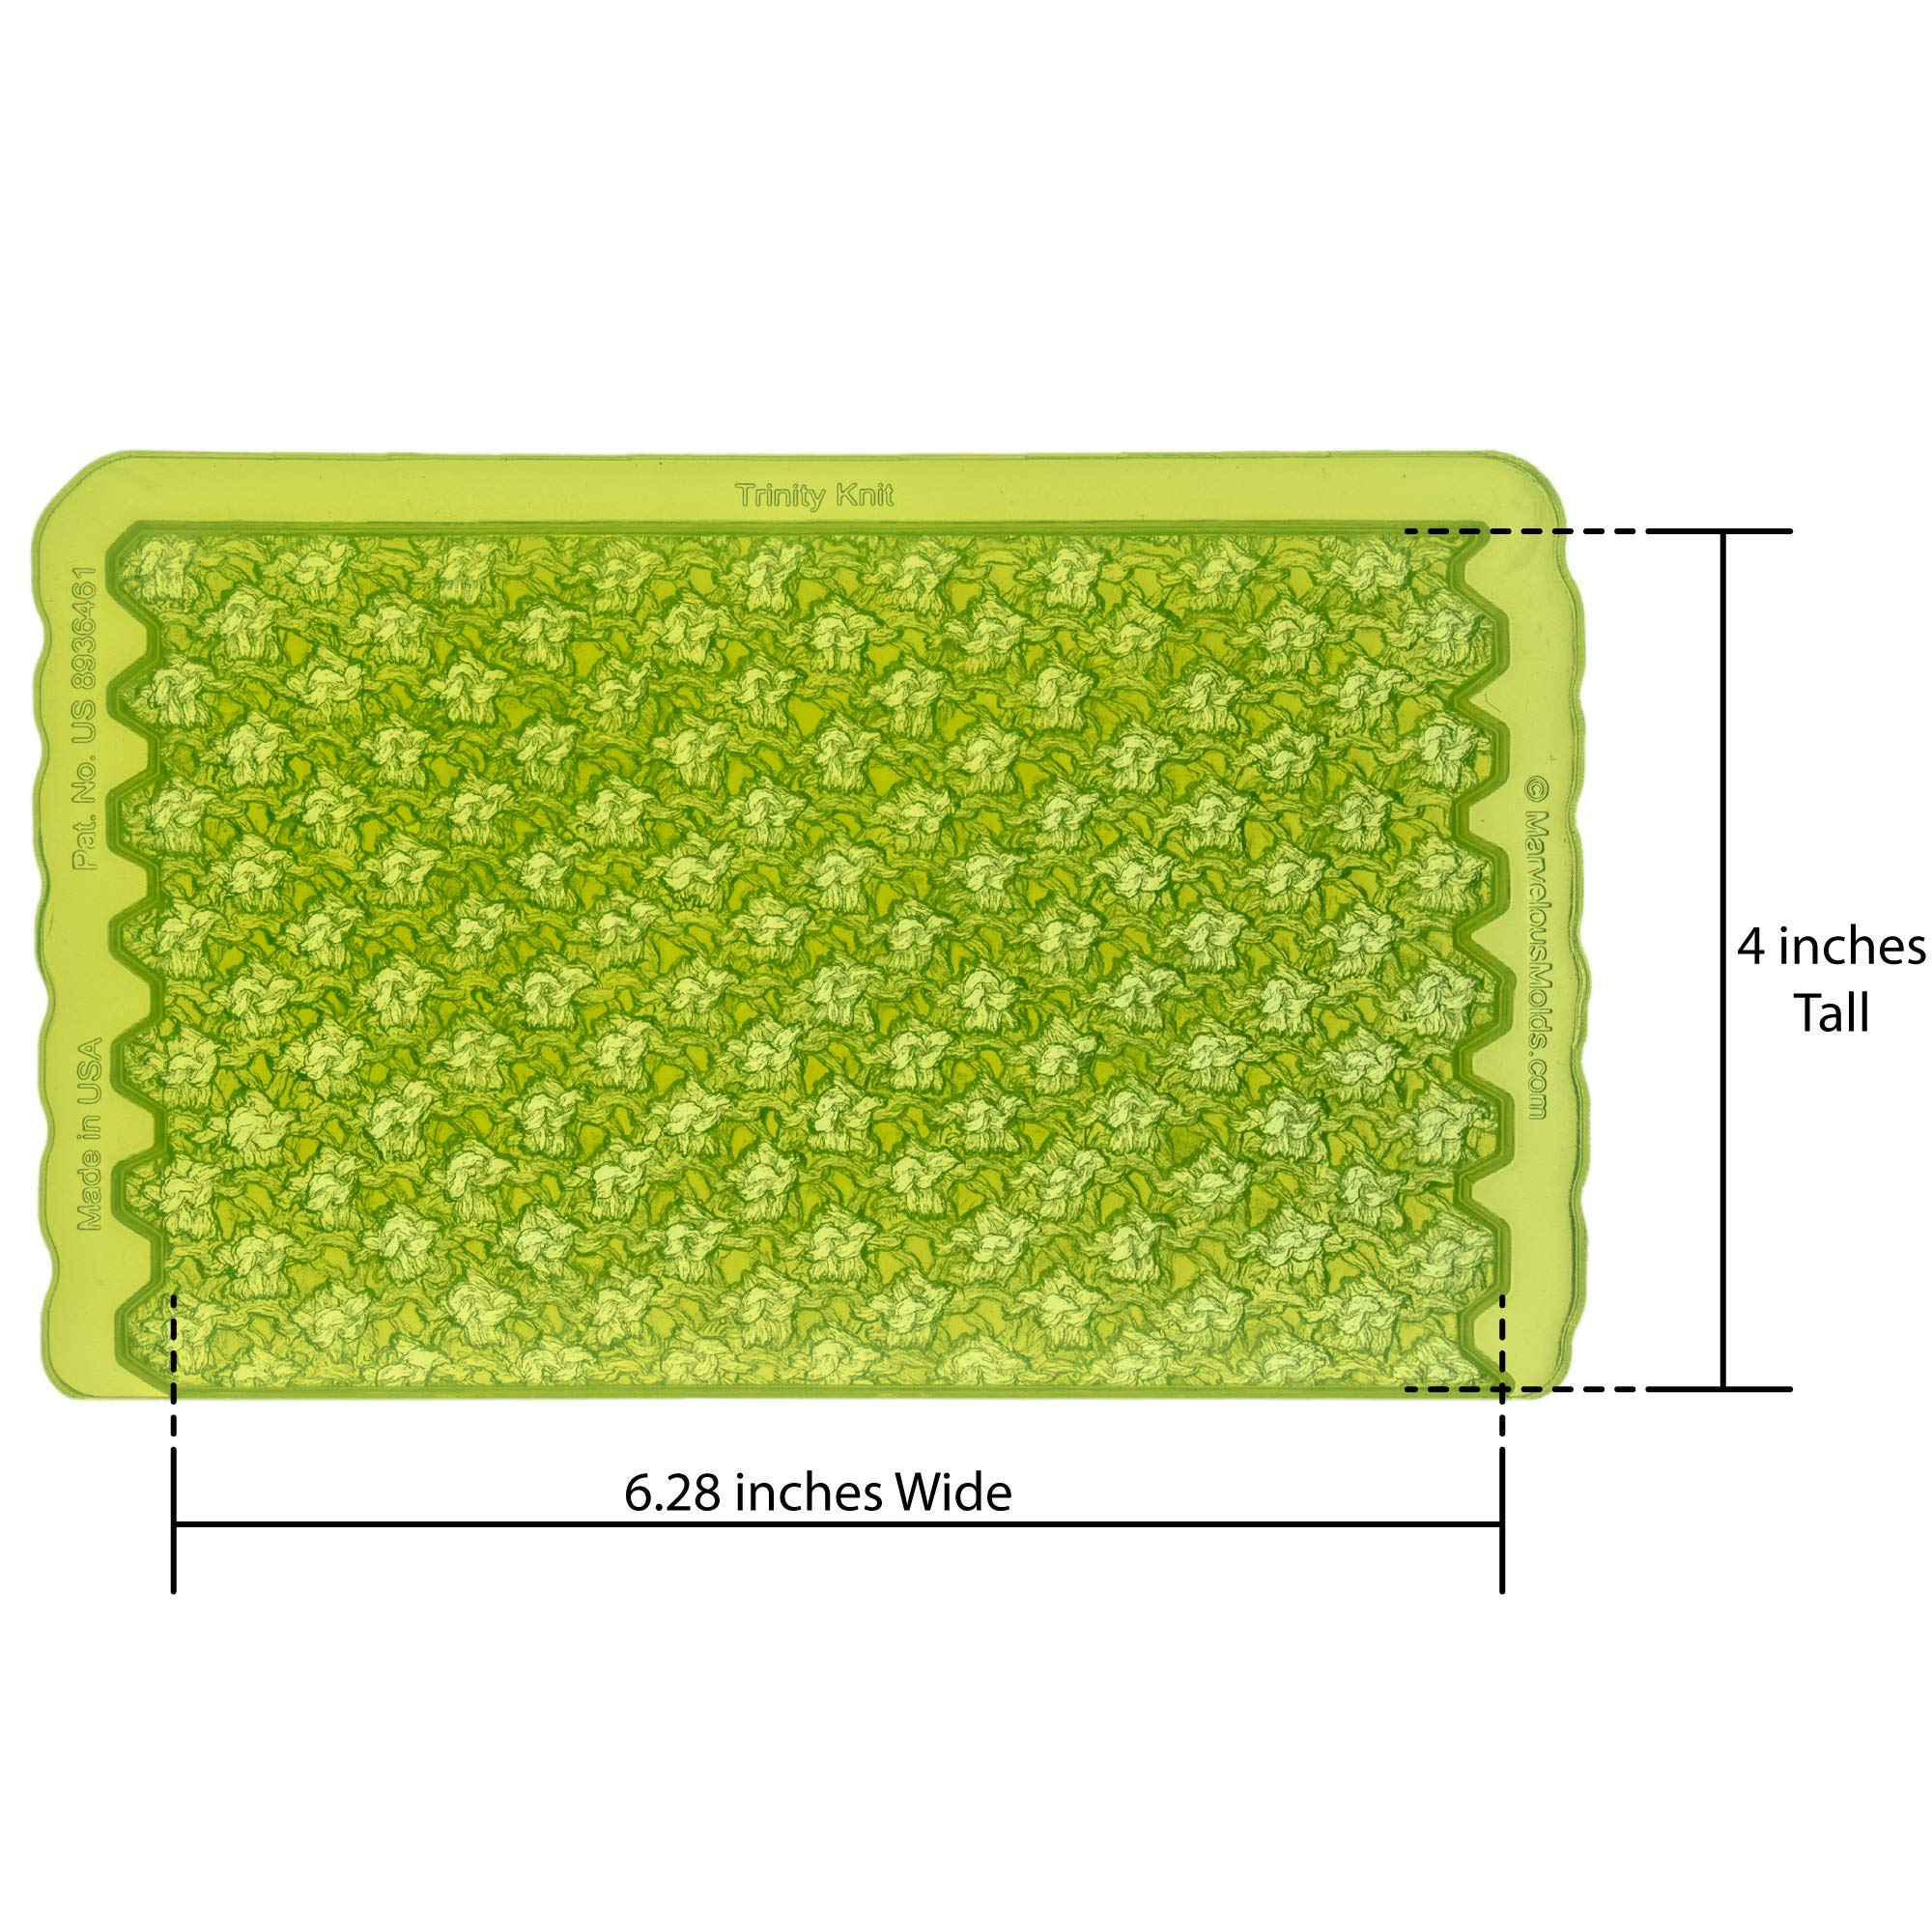 Marvelous Molds Trinity Knit Simpress Silicone Mold   Cake Decorating   Fondant and Gumpaste Icing by Marvelous Molds (Image #2)